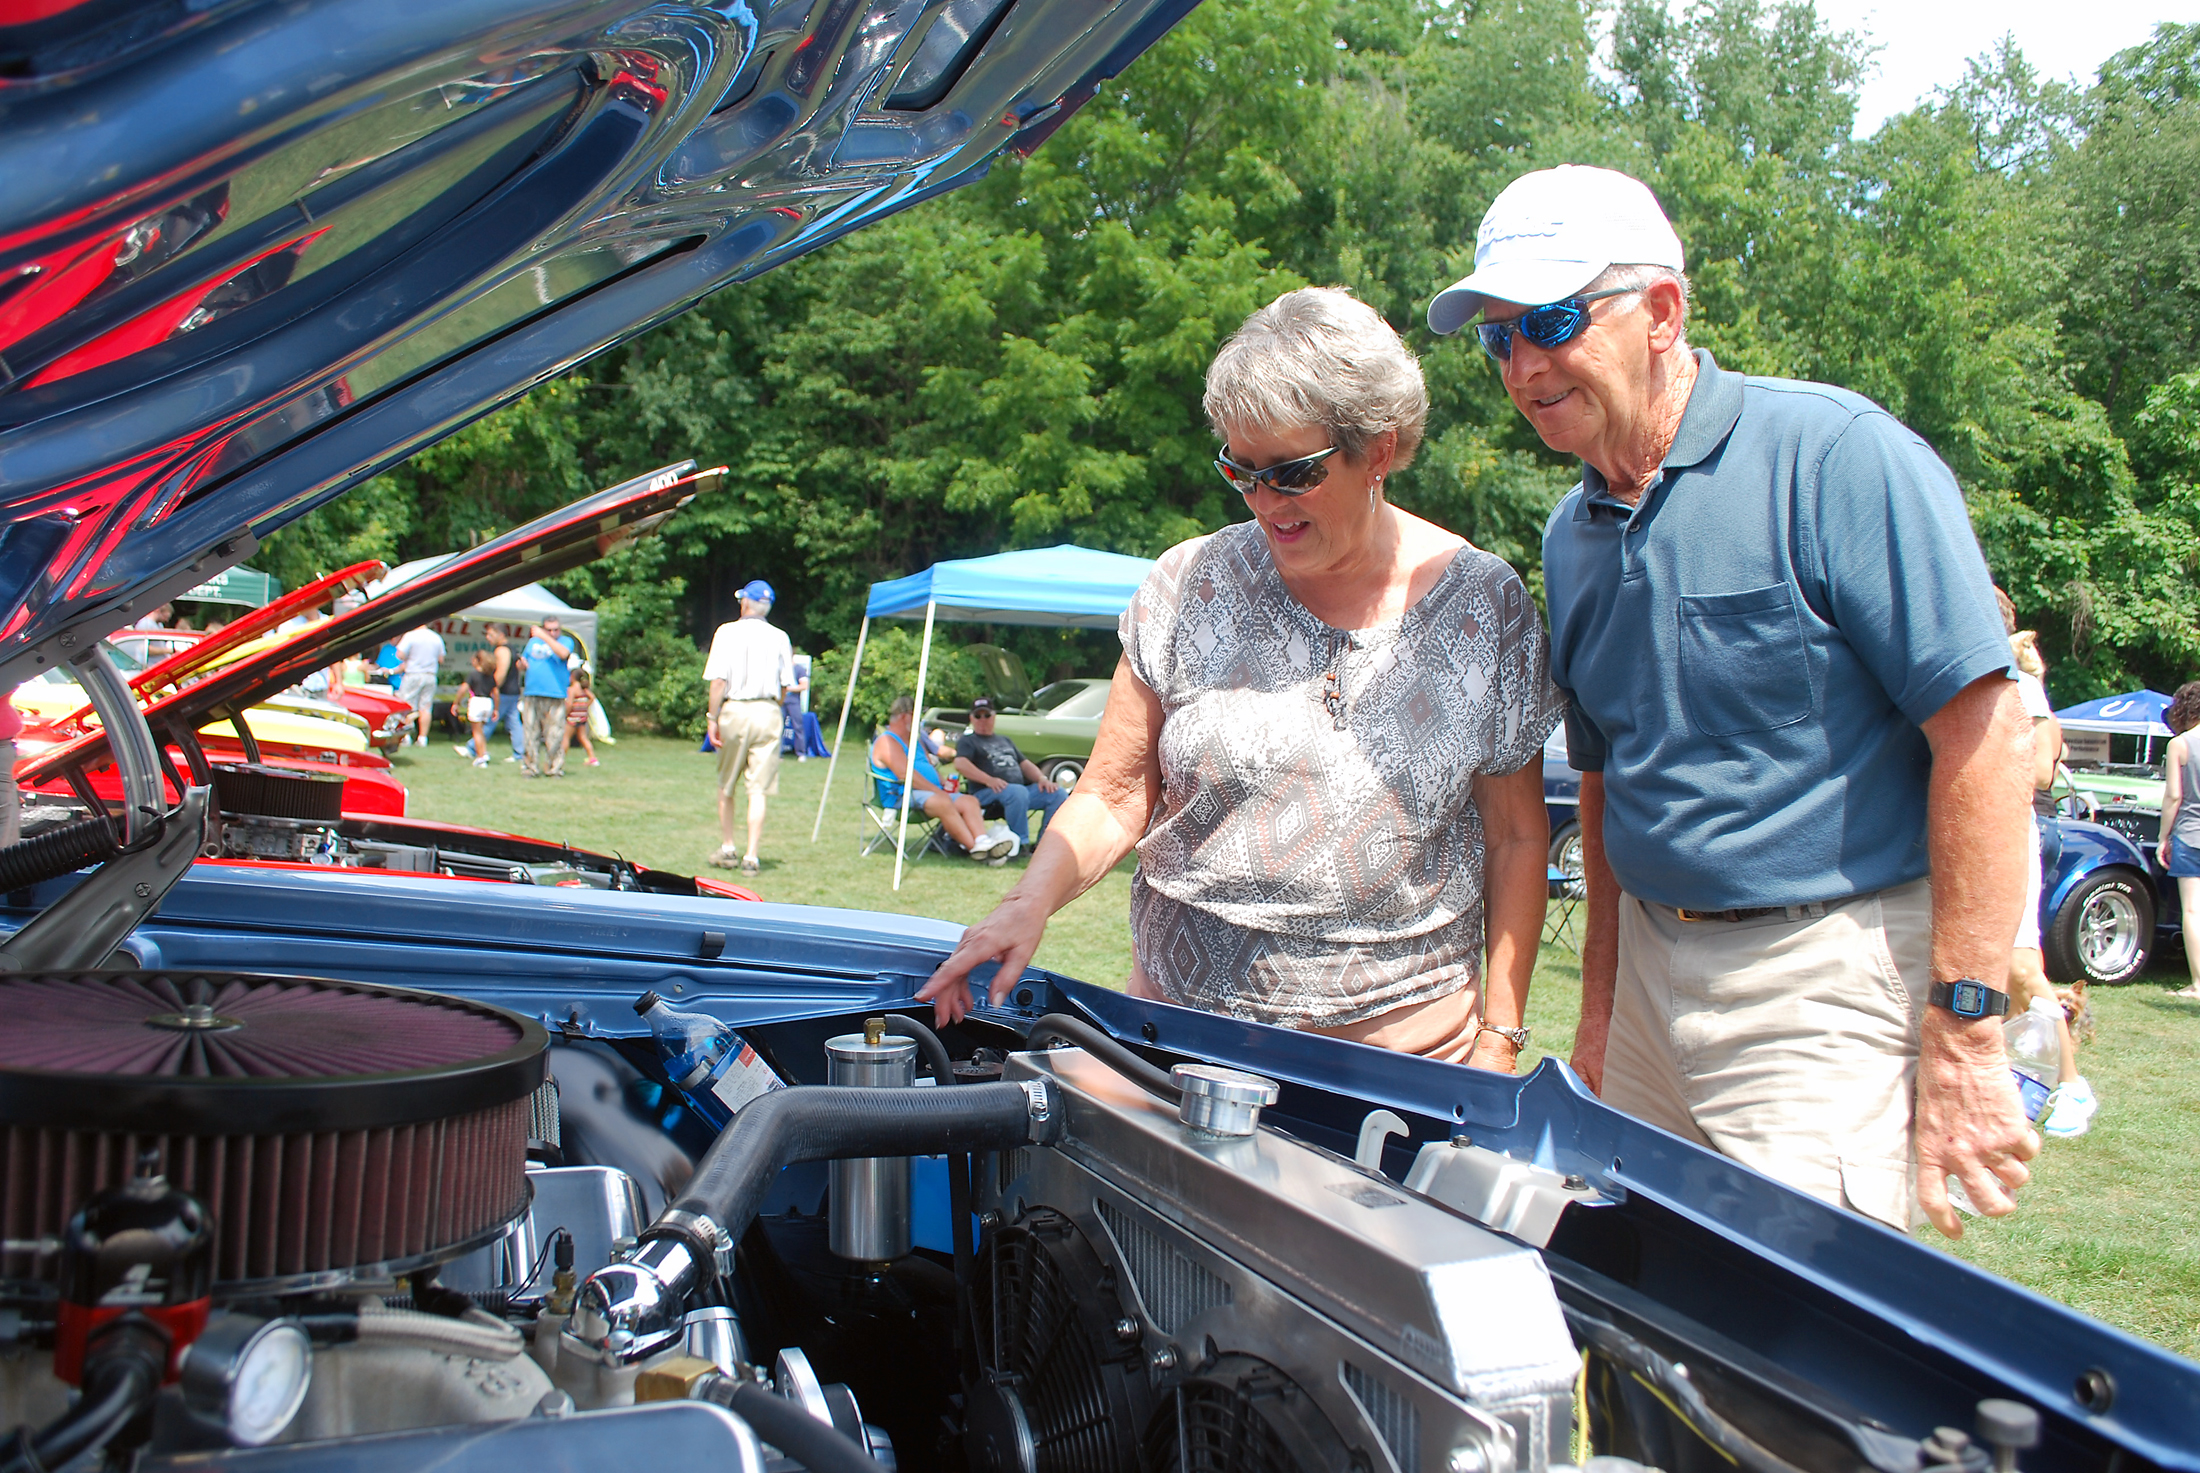 Sue and Jim Morris inspect the engine of Nathan Gale's 1965 Chevy Impala. (File photo)